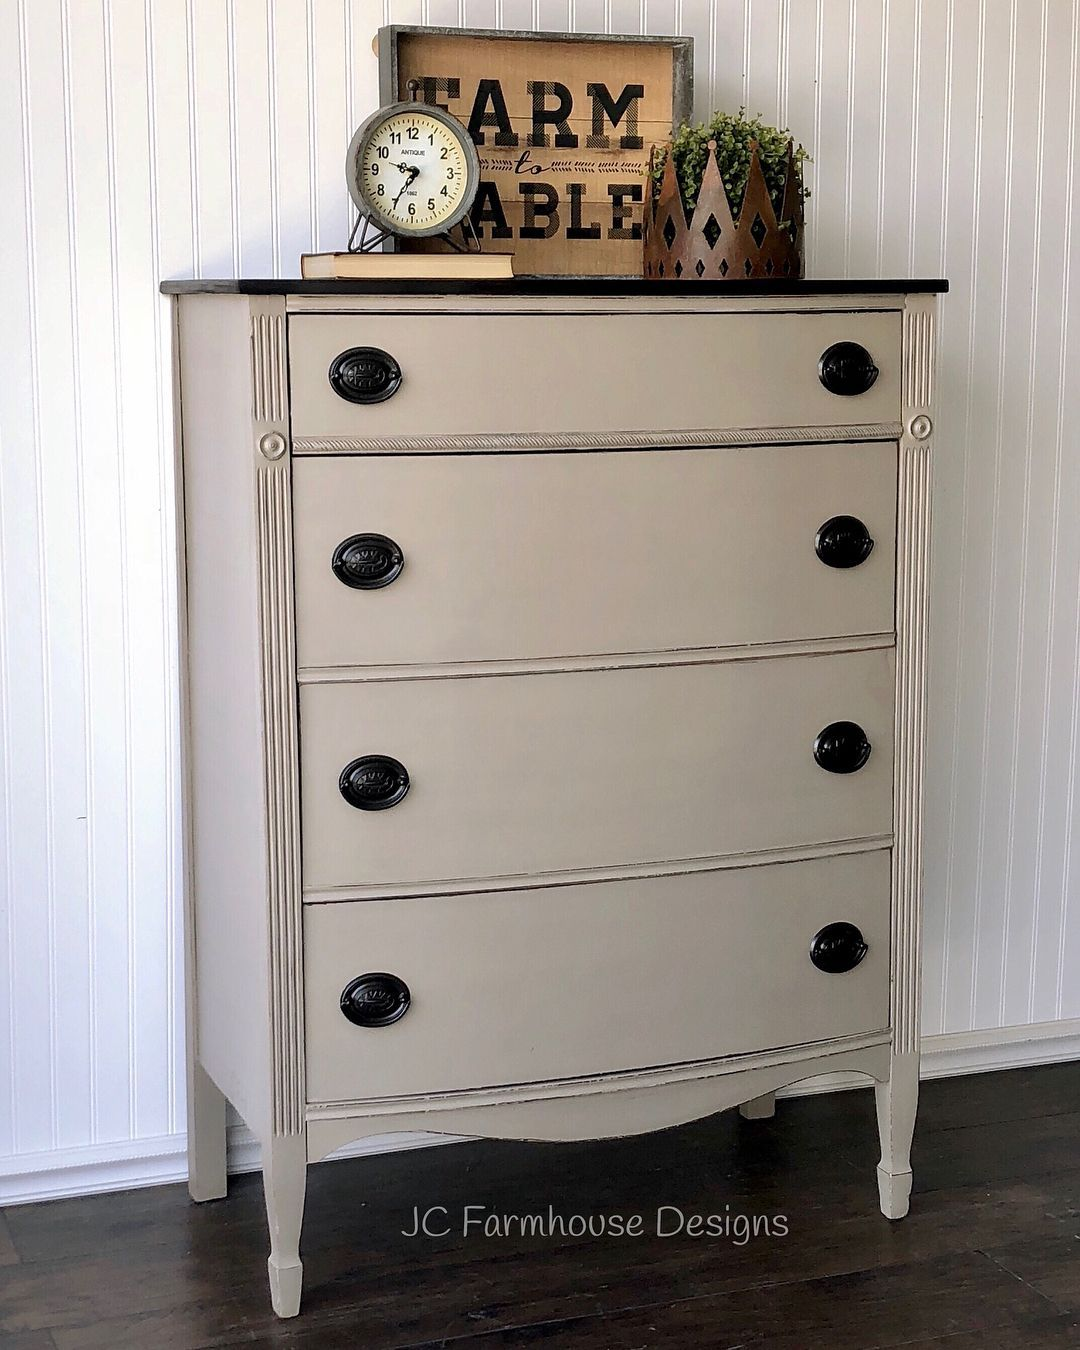 Beautiful refinished vintage farmhouse dresser this beautiful solid